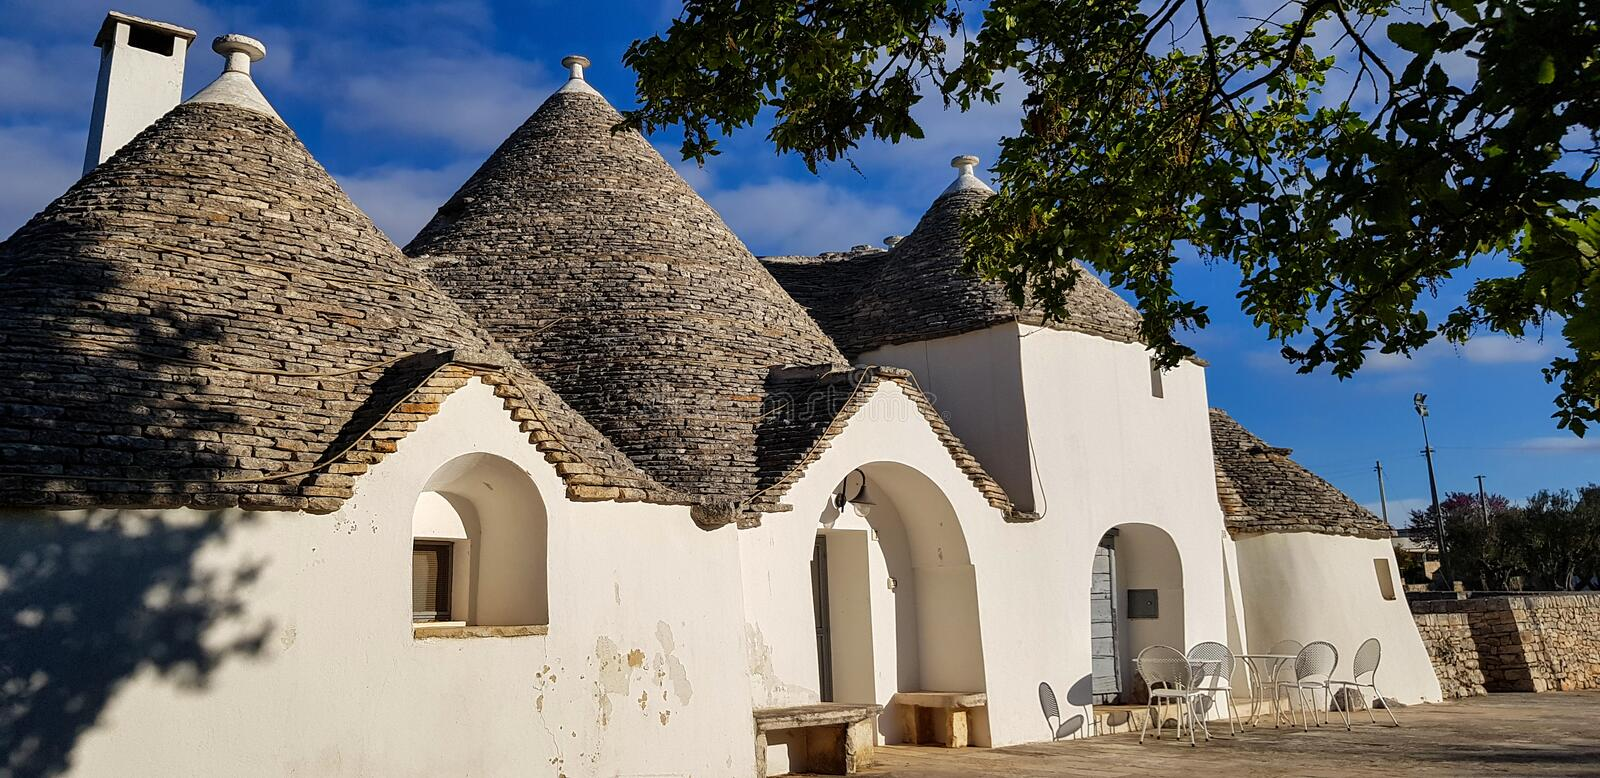 Beautiful town of Alberobello with trulli houses. It is an Italian town in the metropolitan city of Bari, in Puglia,  Italy.  royalty free stock images